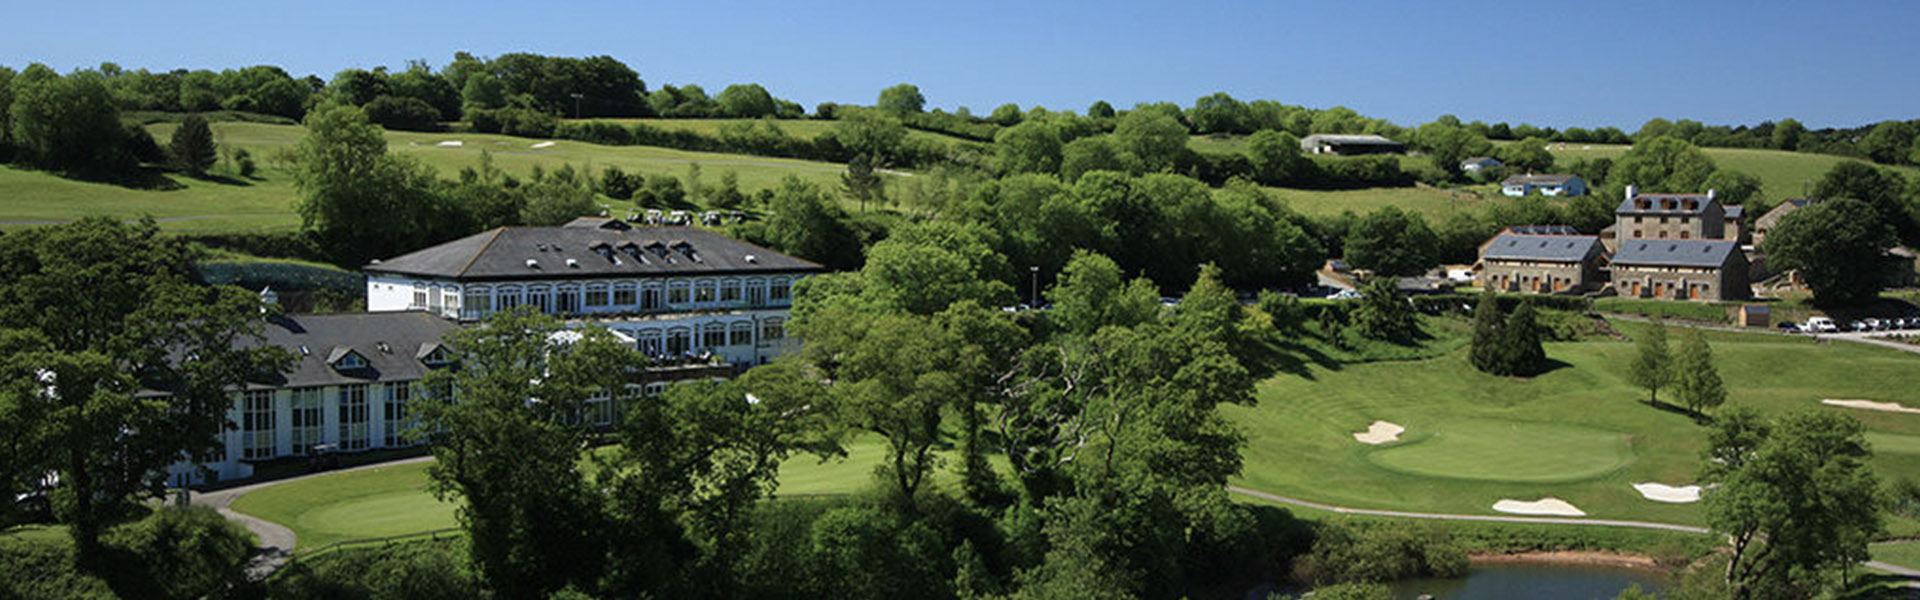 Dartmouth hotel golf and spa